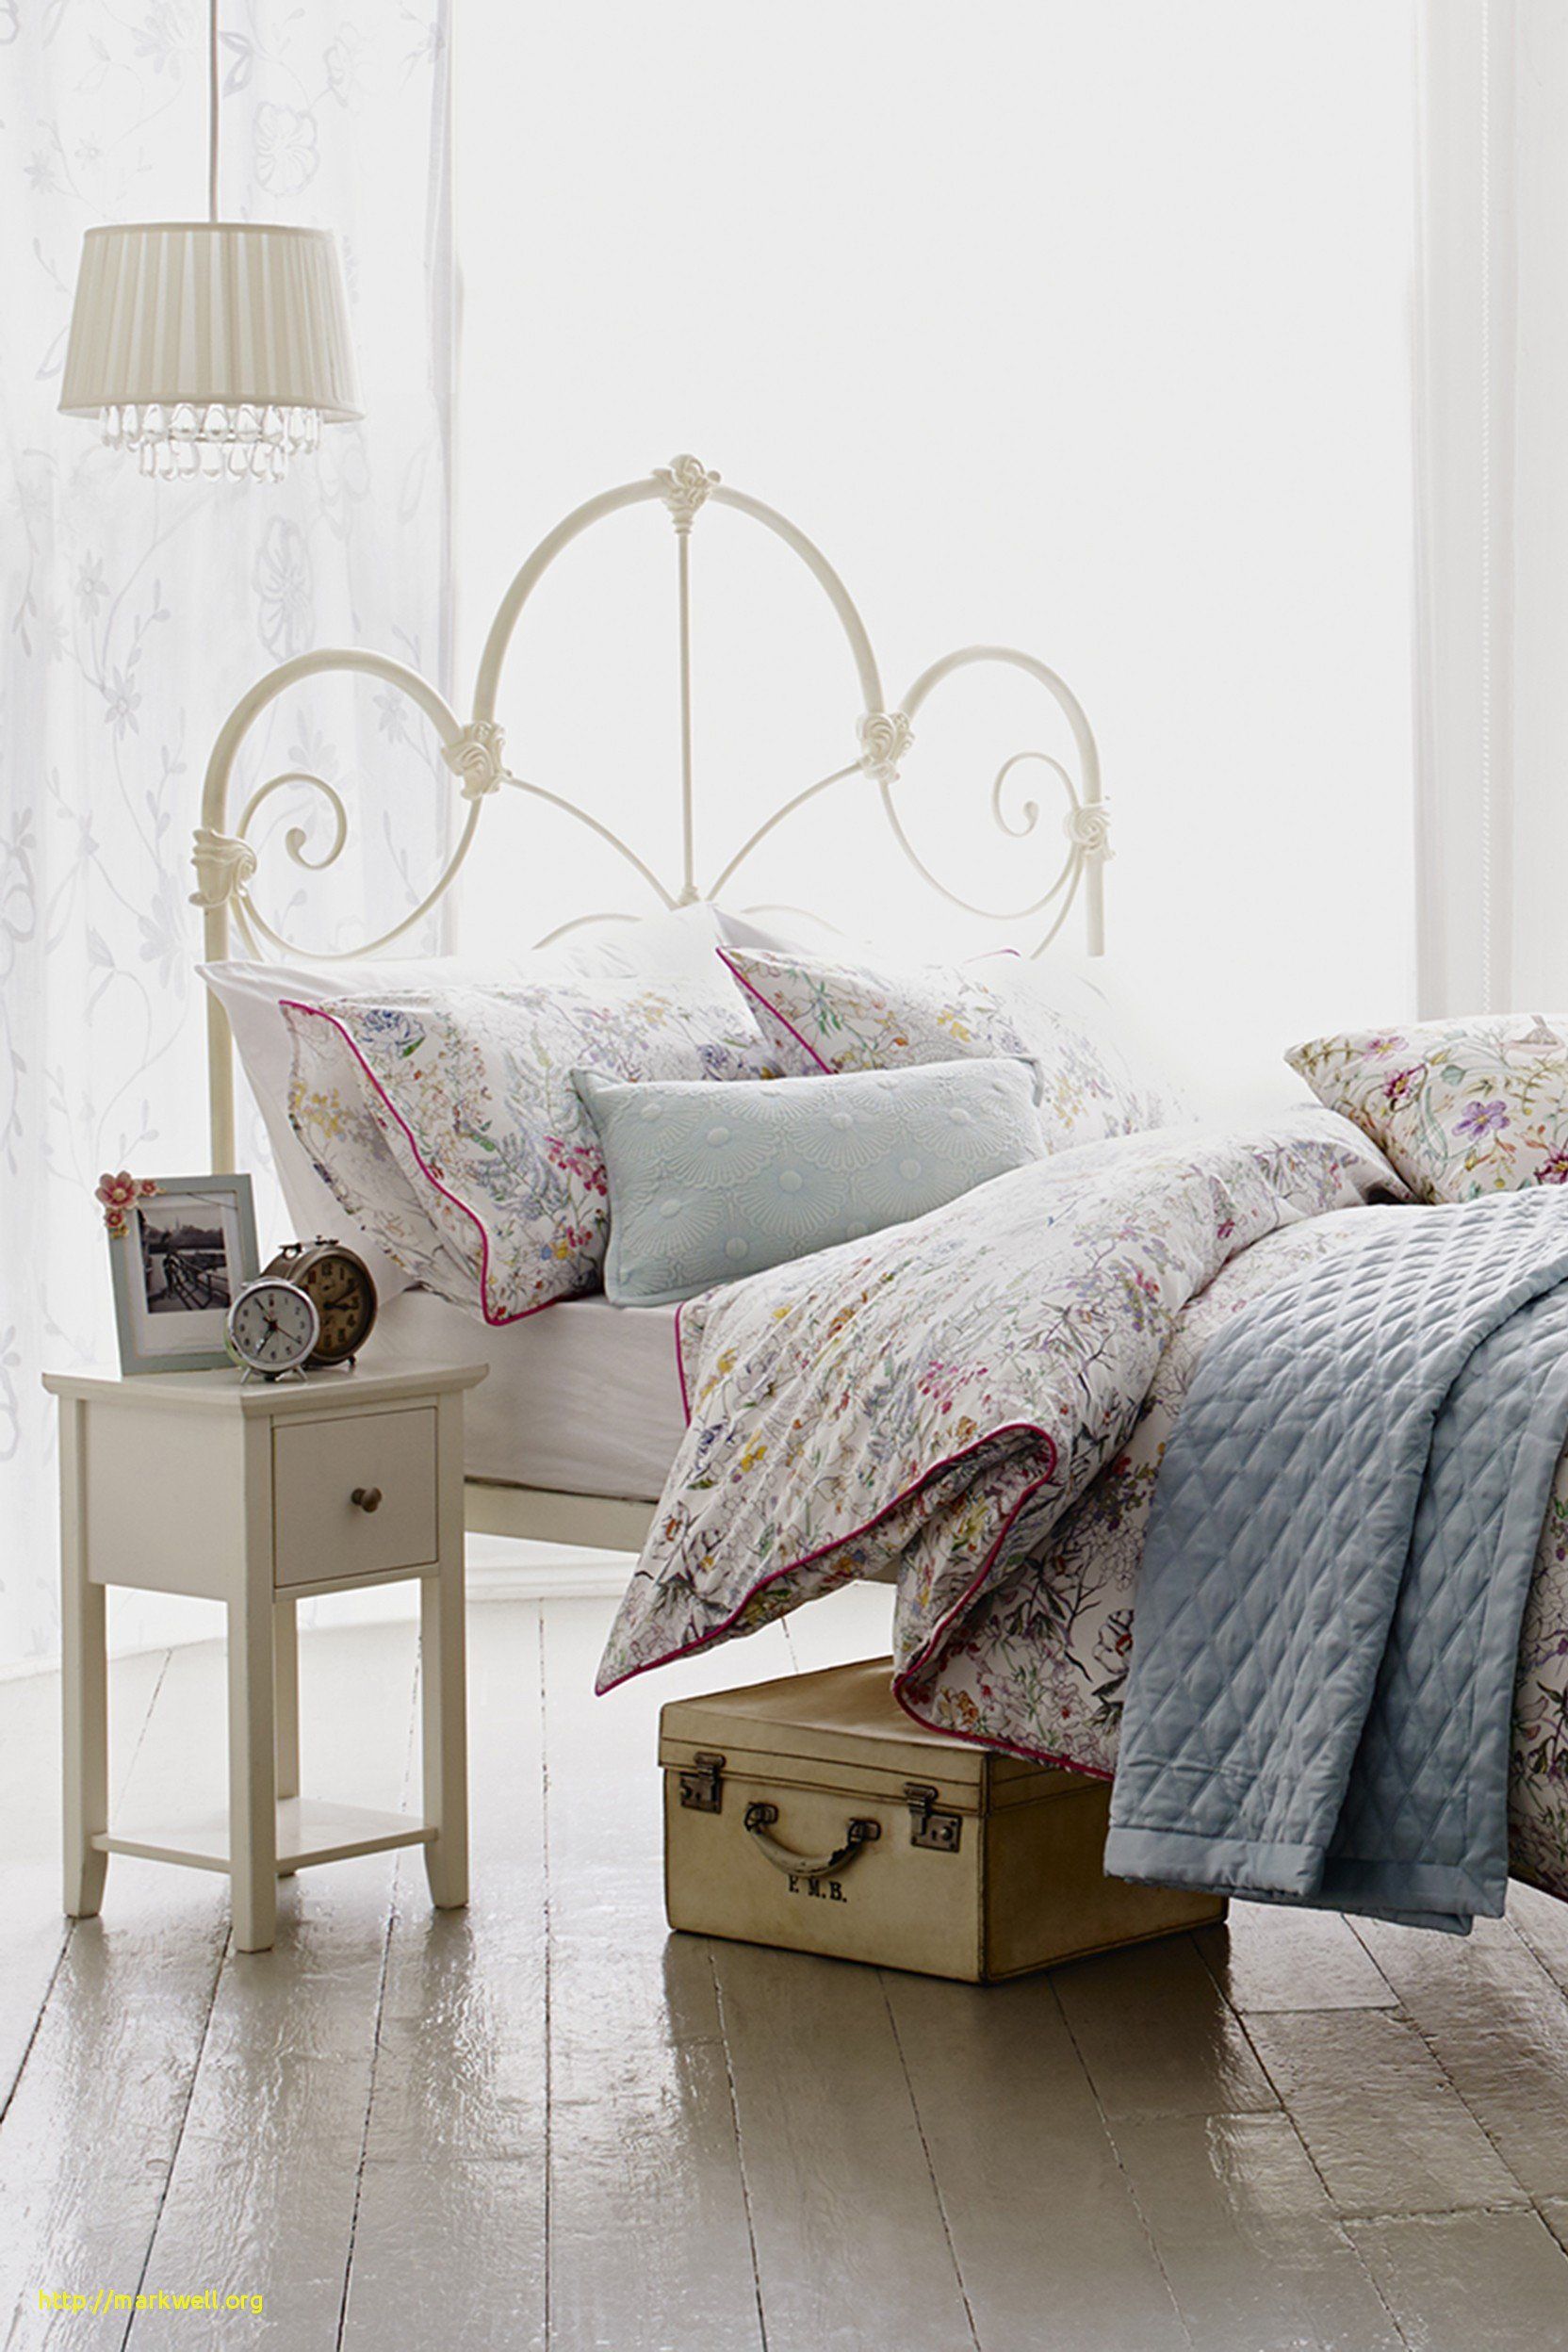 Best Place to Buy Bedroom Furniture Elegant Elegant Cheap Bedroom Chairs